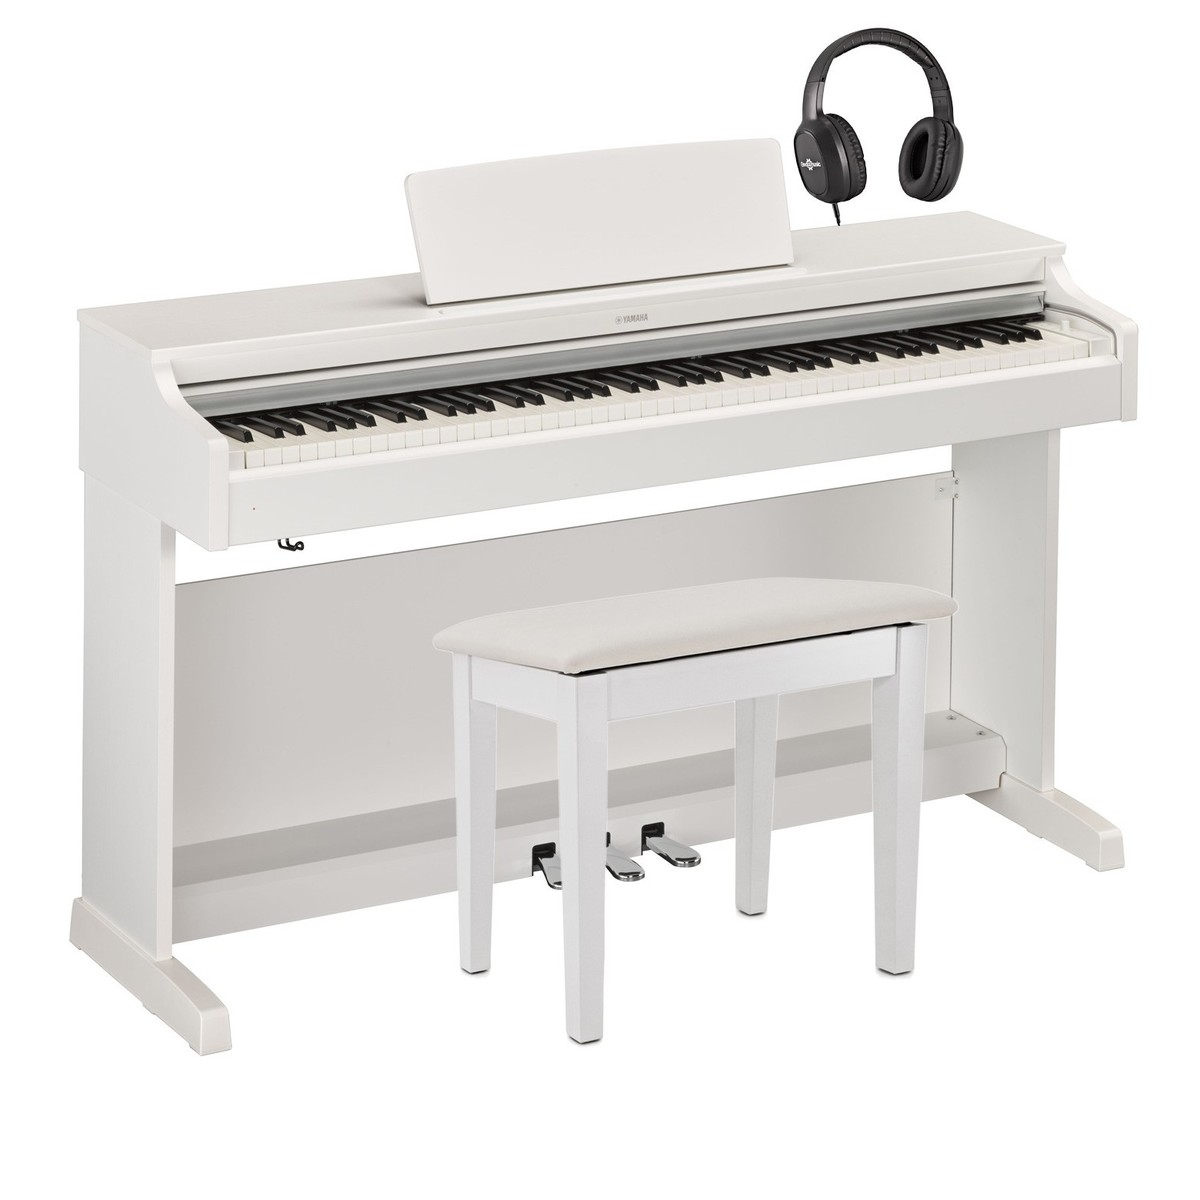 yamaha ydp 163 digital piano package white at gear4music. Black Bedroom Furniture Sets. Home Design Ideas